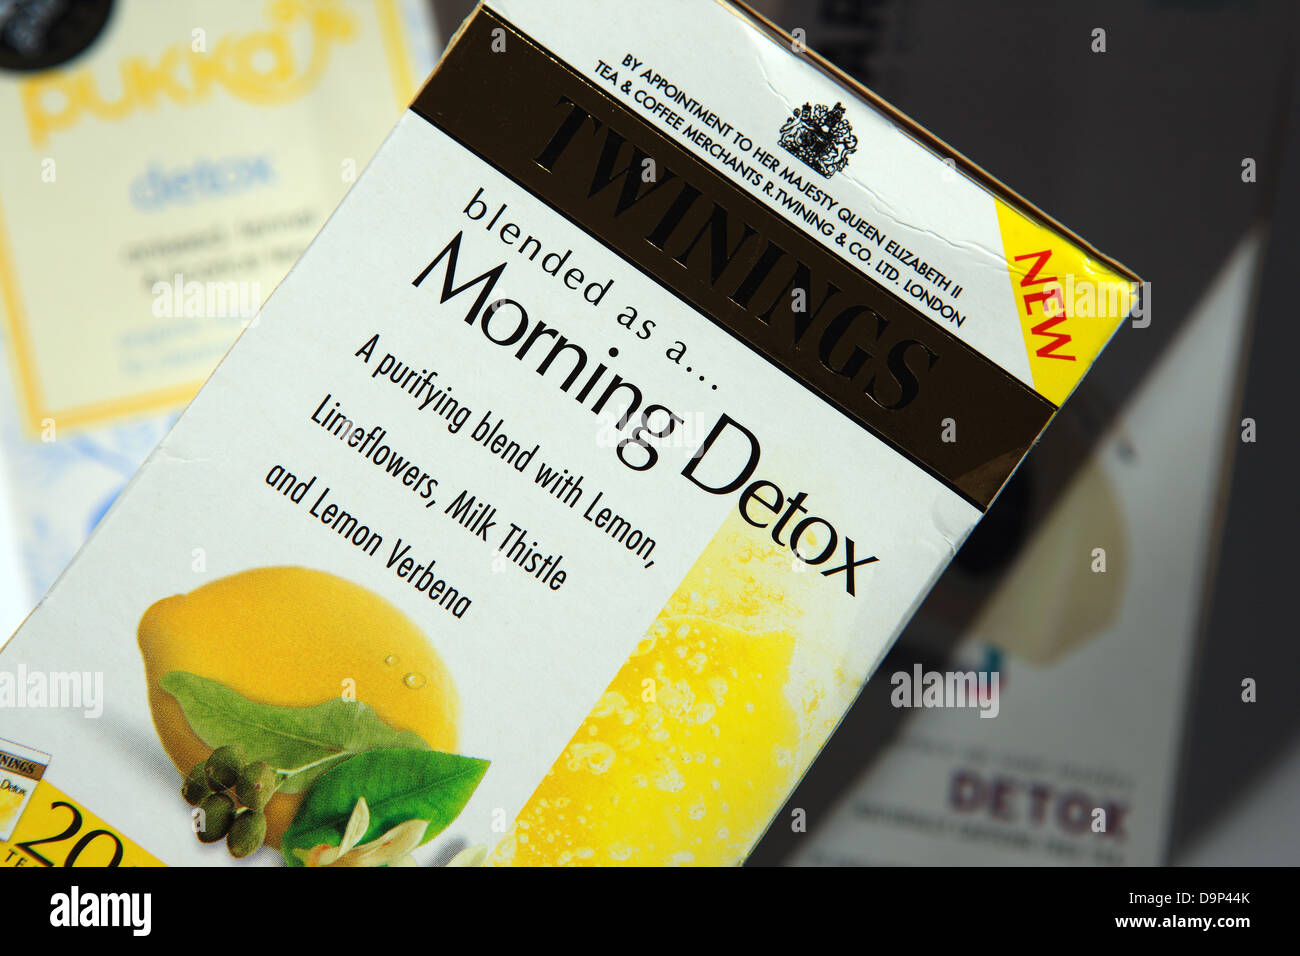 Box of Twinings Morning Detox herbal tea bags with other makes of Detox teas behind - Stock Image